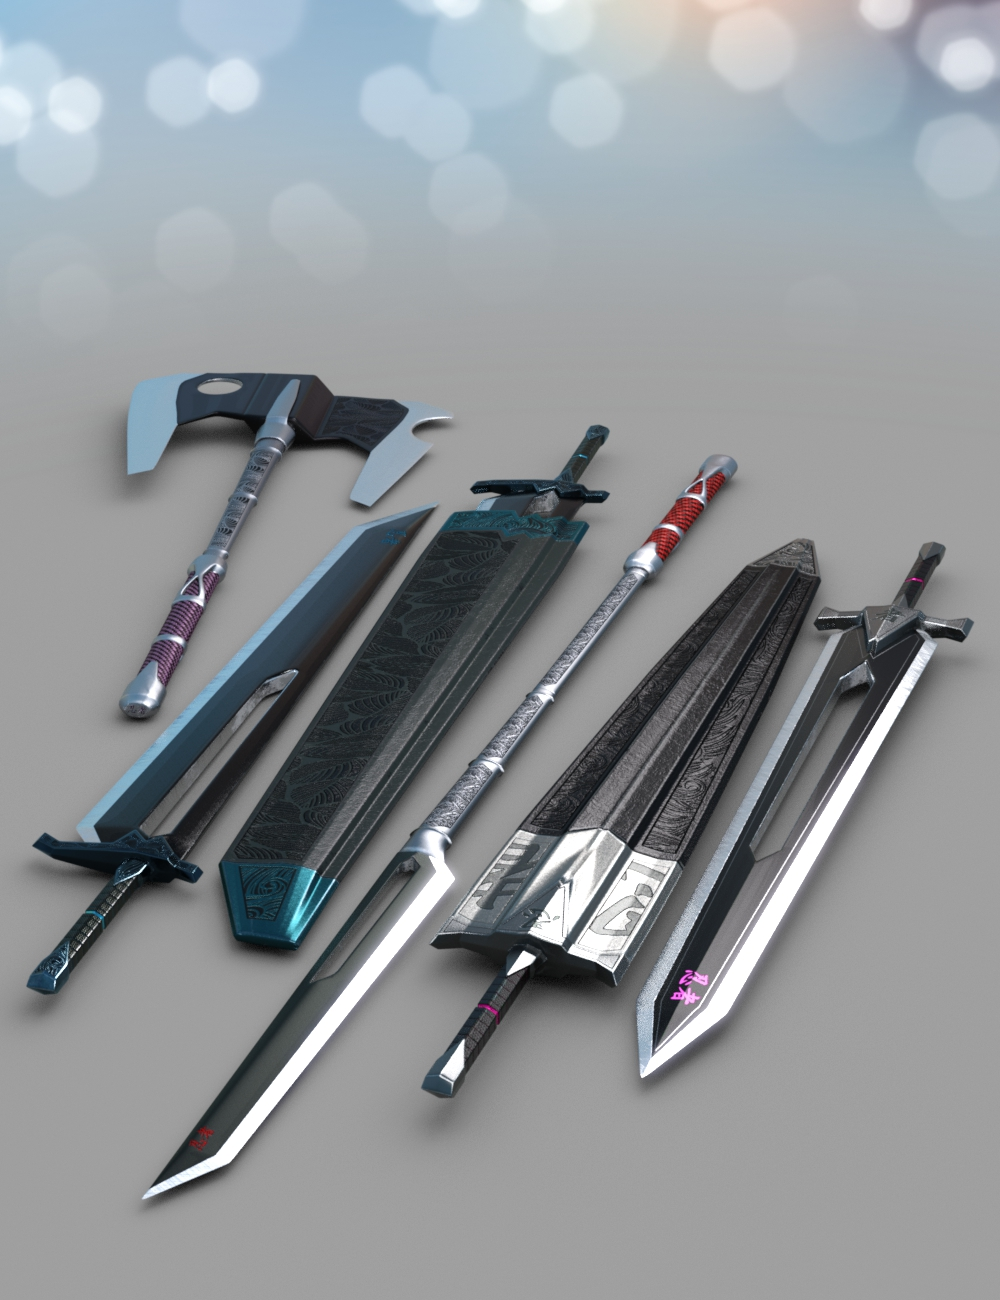 Anime Weapons by: Britech, 3D Models by Daz 3D